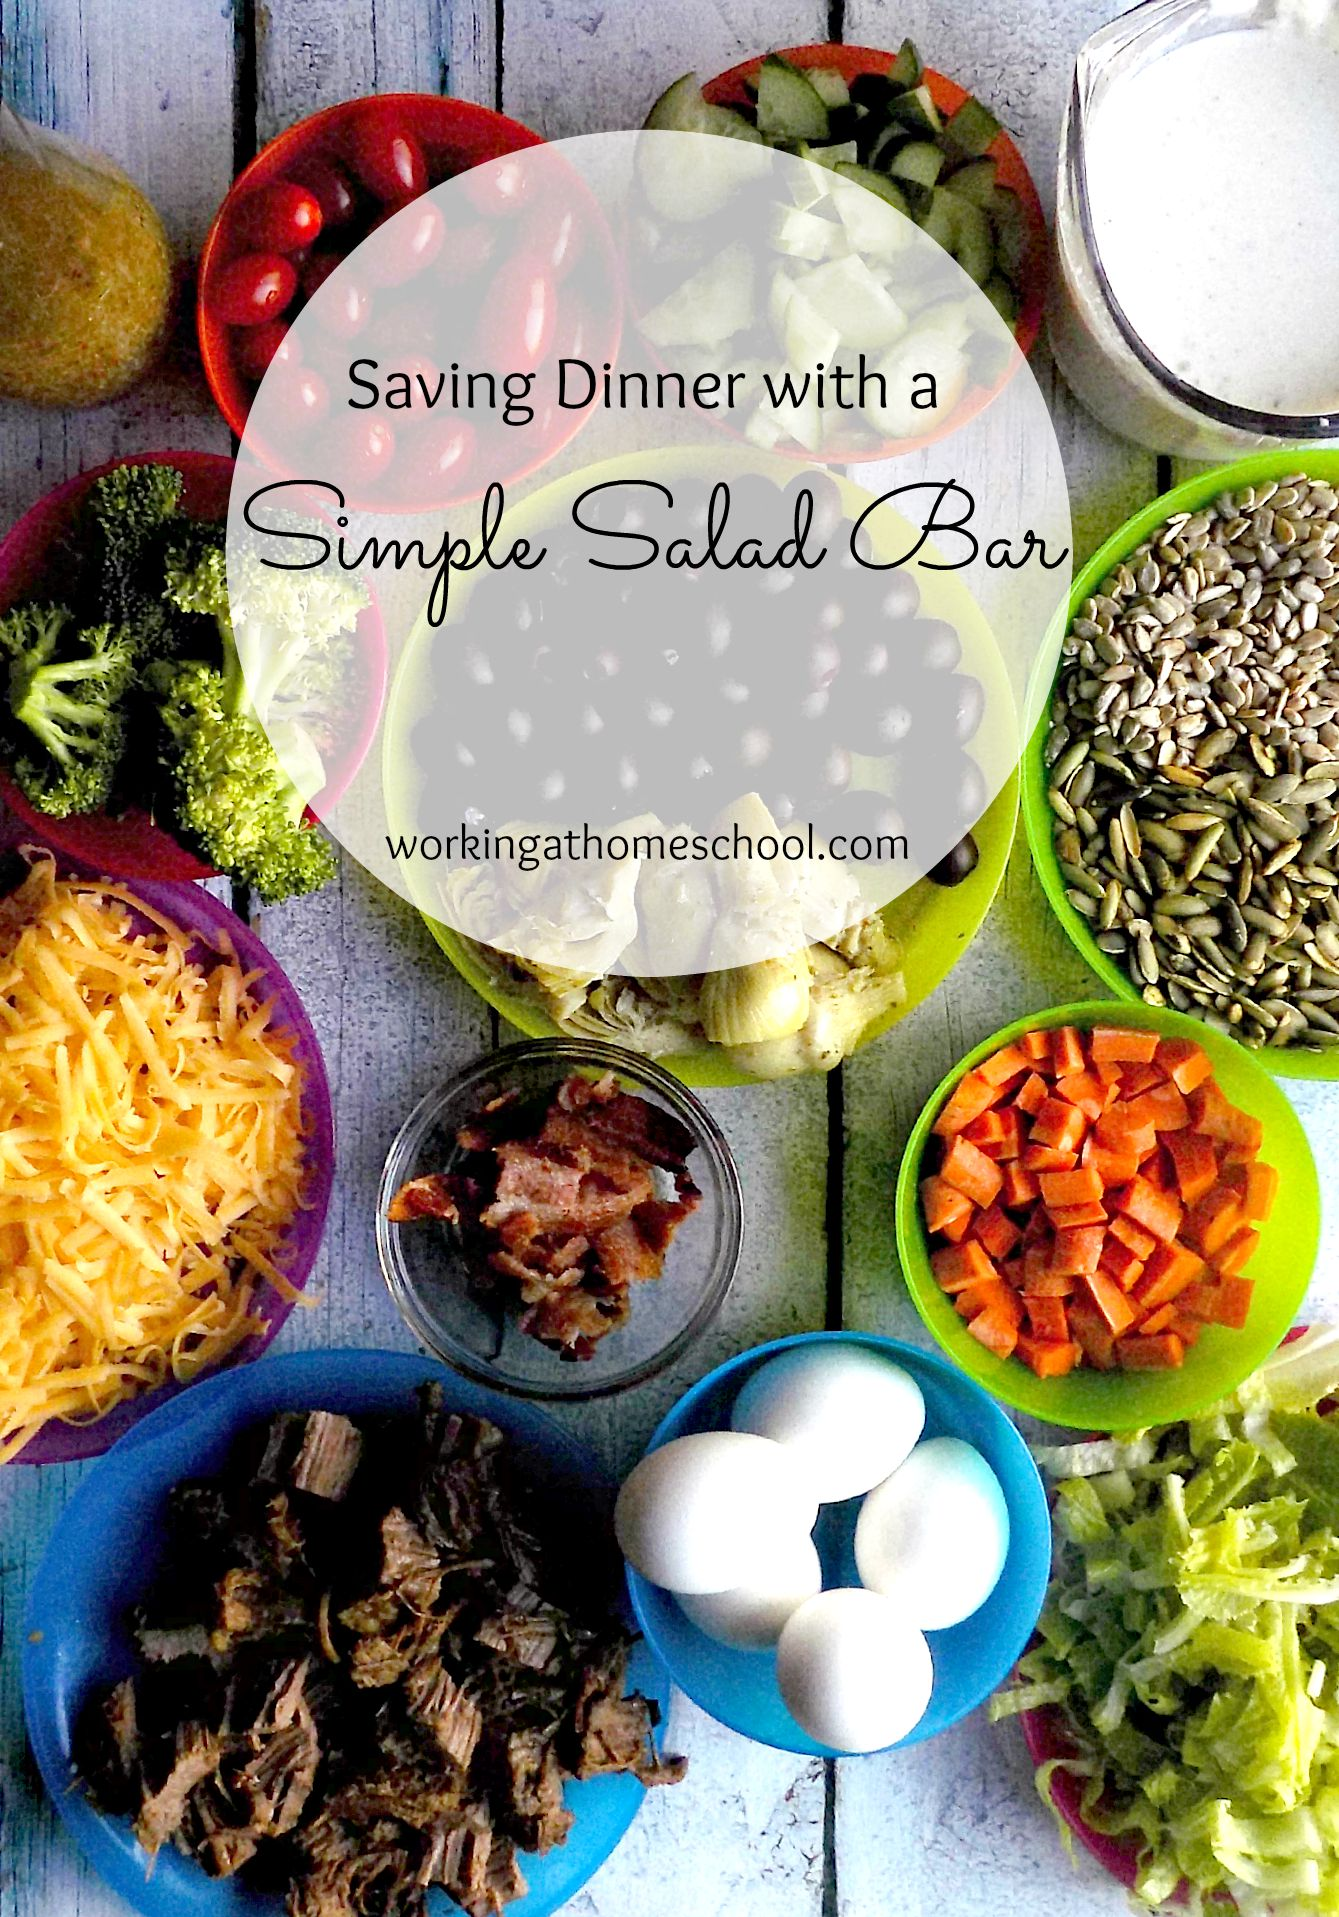 Super simple - save money by using up your leftovers on a once-a-week salad bar night!